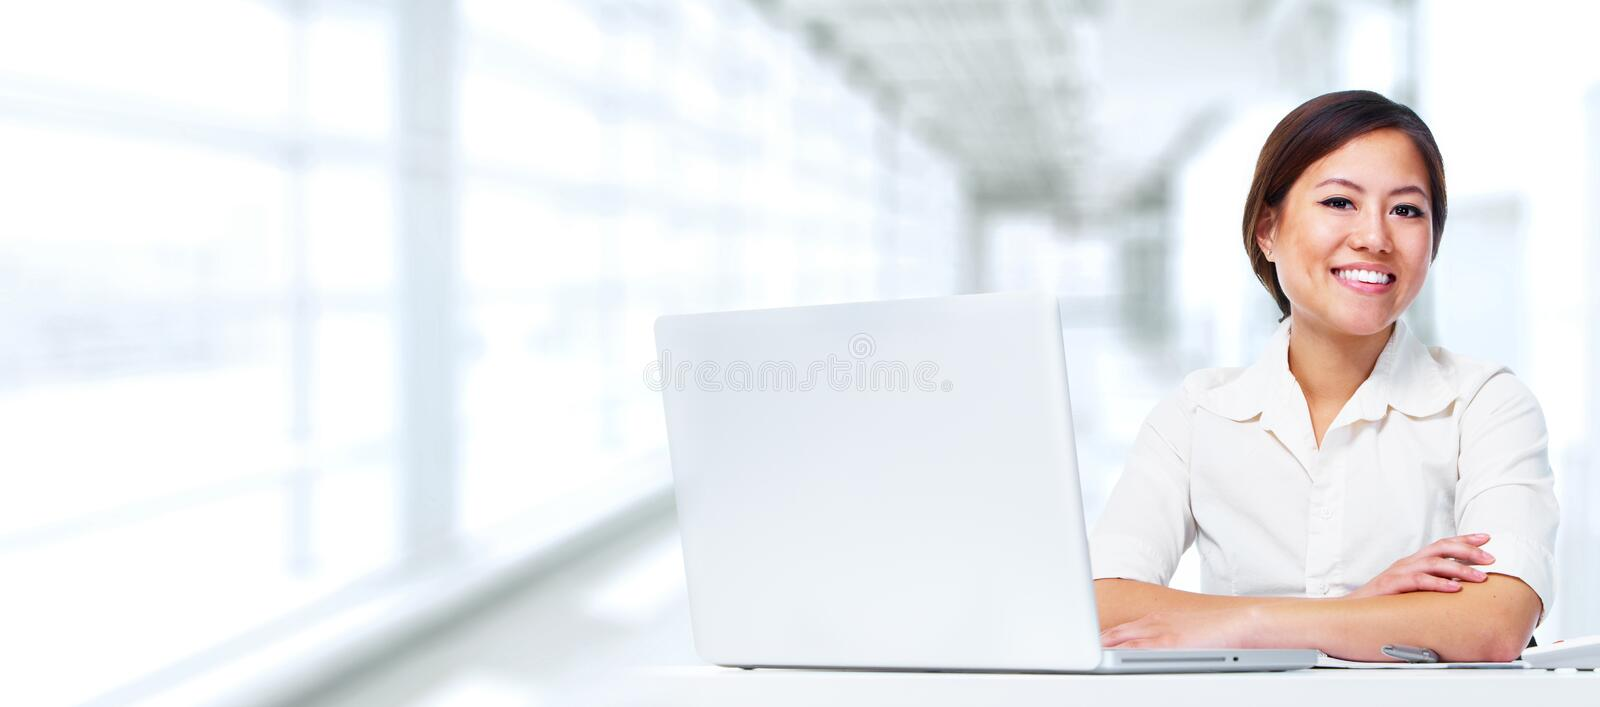 Business woman with laptop. royalty free stock image